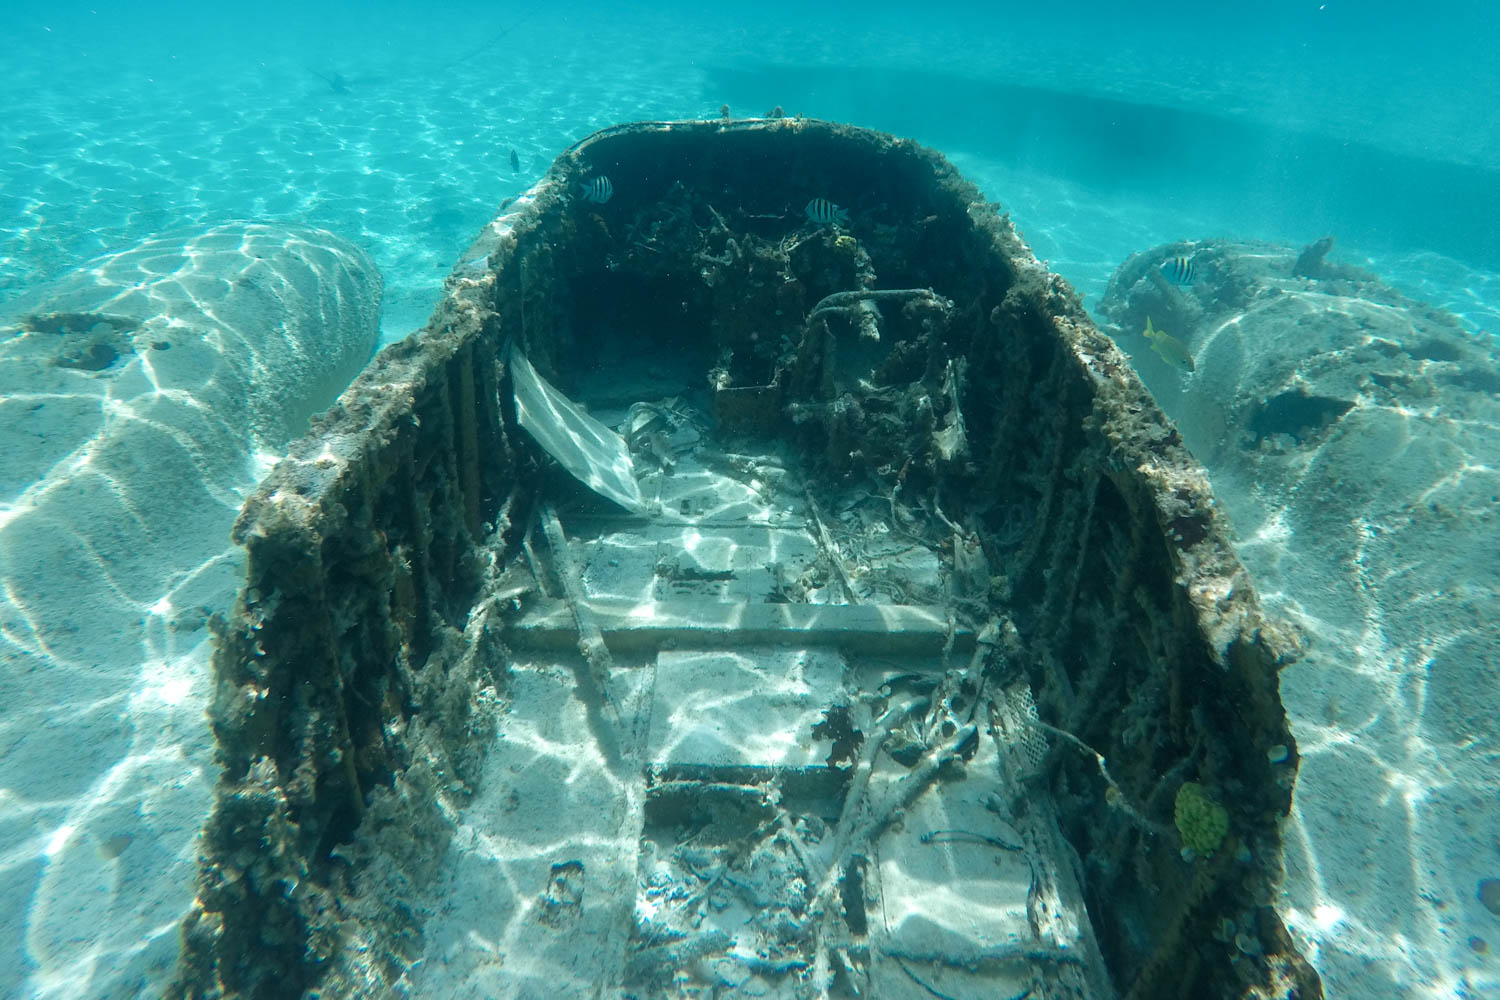 Bahamas Plane wreck Exuma is a Bahamas plane crash from the 1970s that left this Bahamas underwater plane for visitors to enjoy from Staniel Cay.